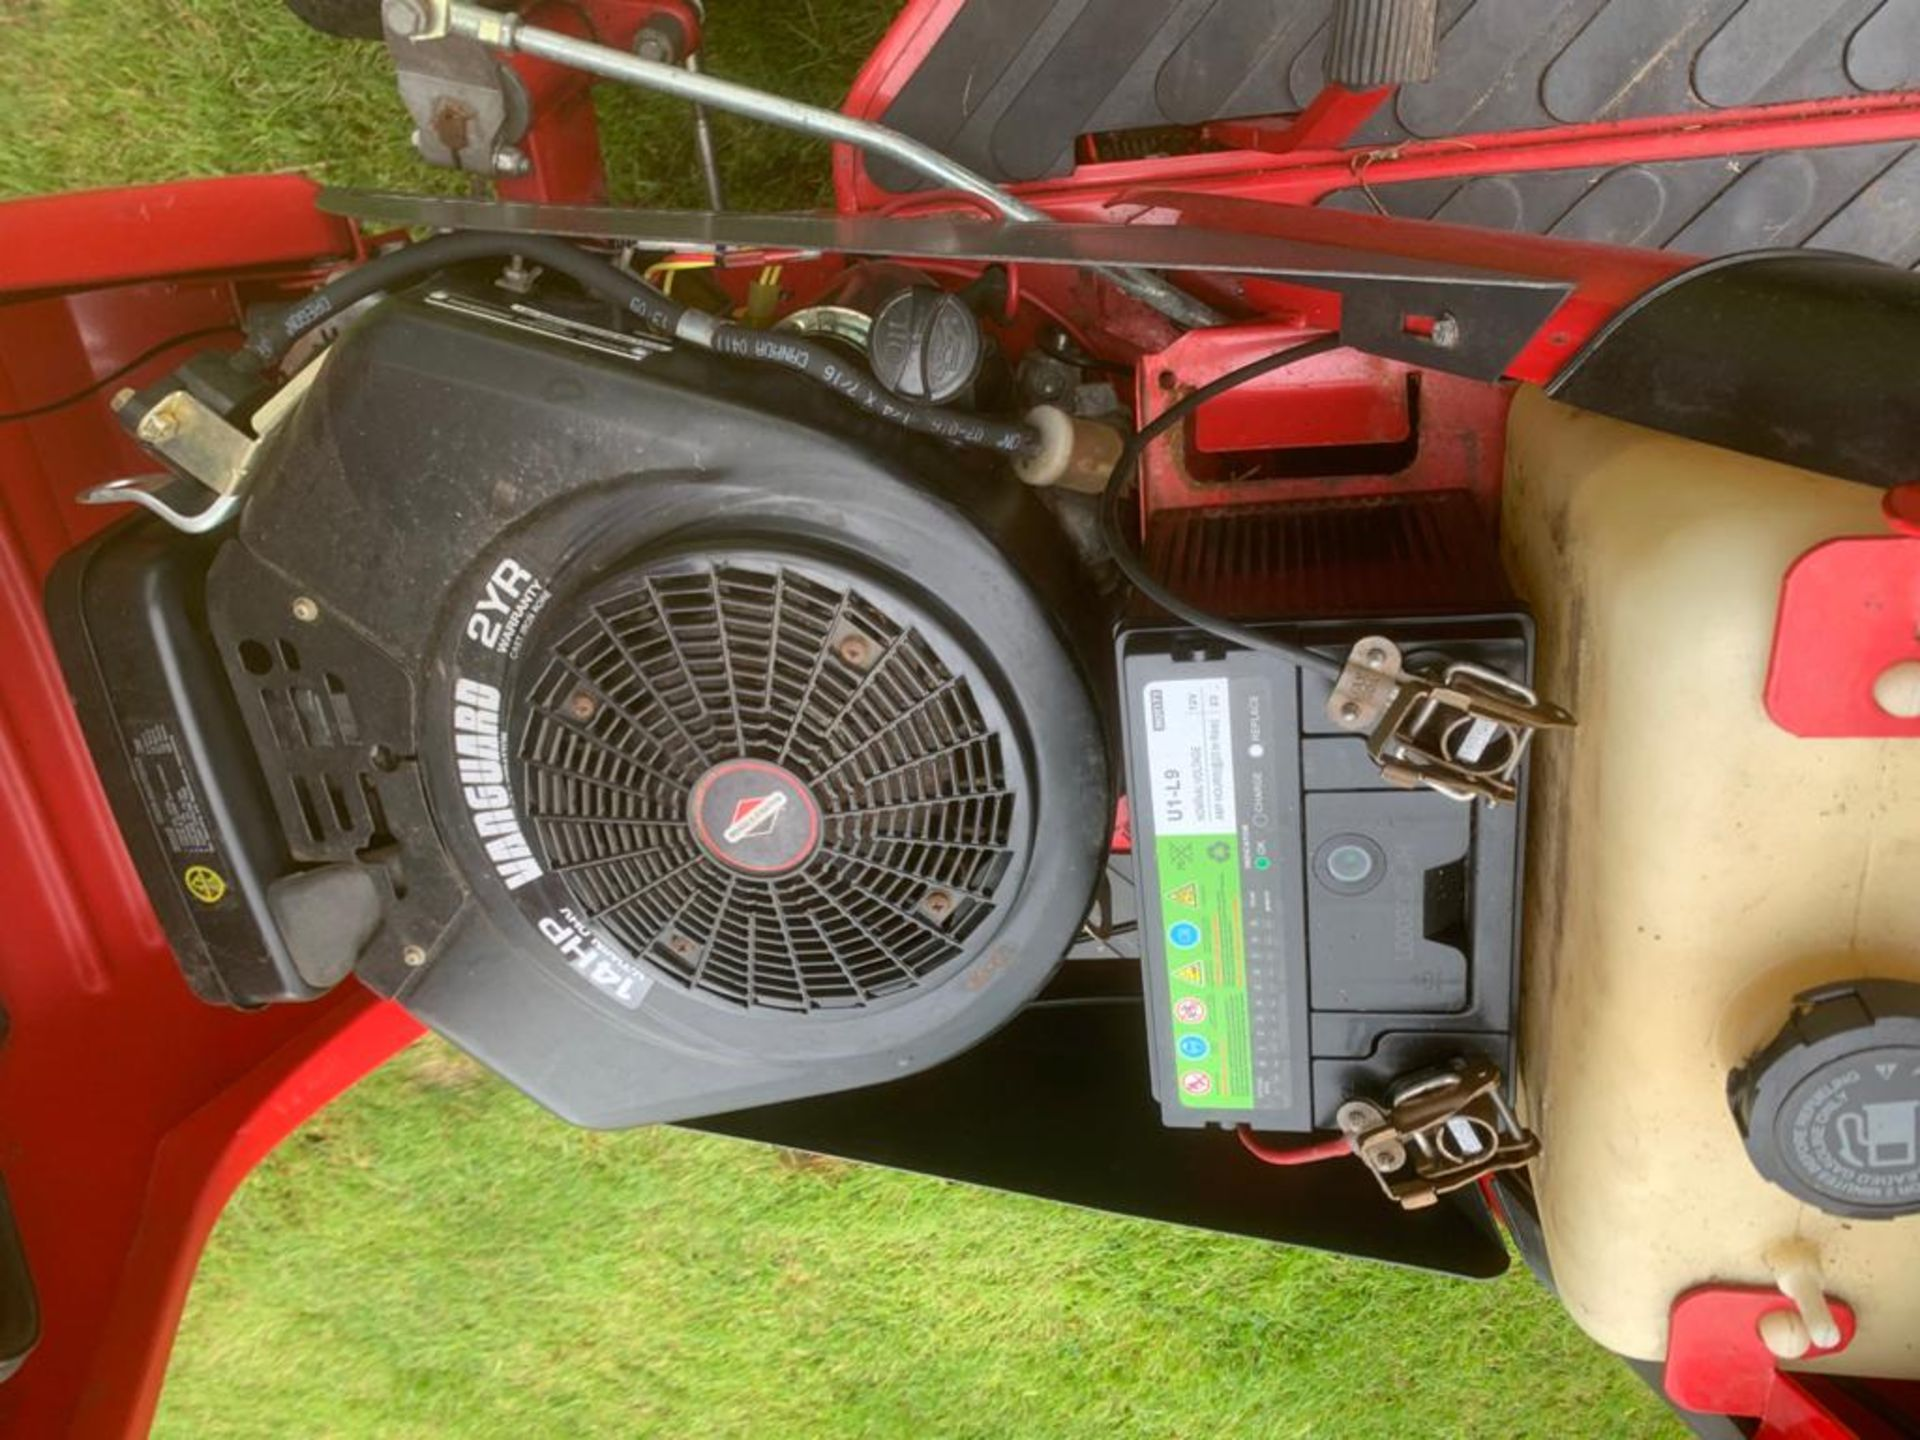 COUNTAX C400H HYDROSTATIC PETROL RIDE ON LAWN MOWER WITH SWEEPER *PLUS VAT* - Image 2 of 7